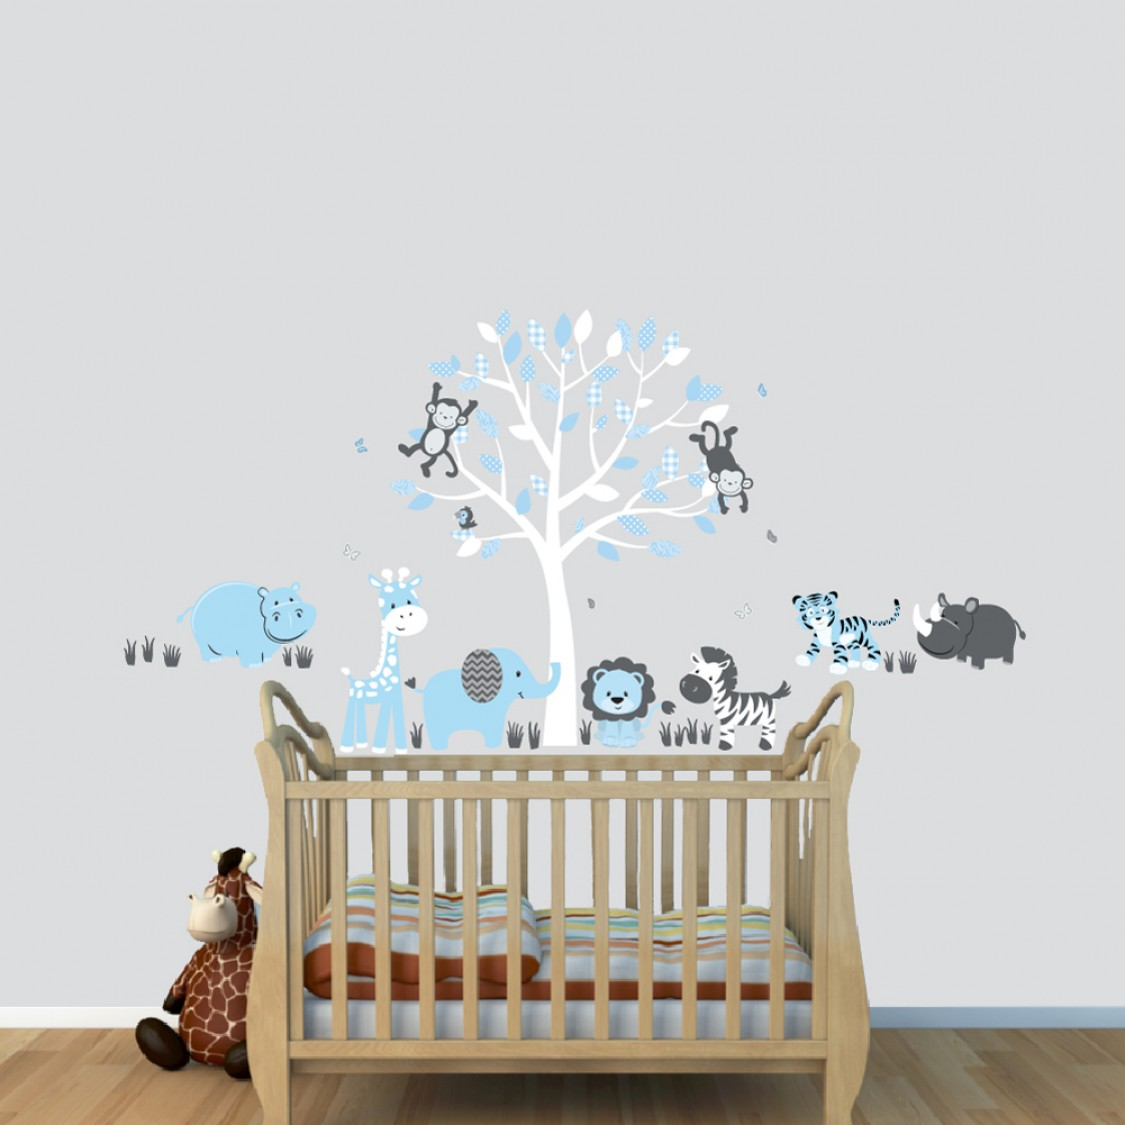 Little Boys Jungle Wall Clings With Hippo Wall Decal For Playroom